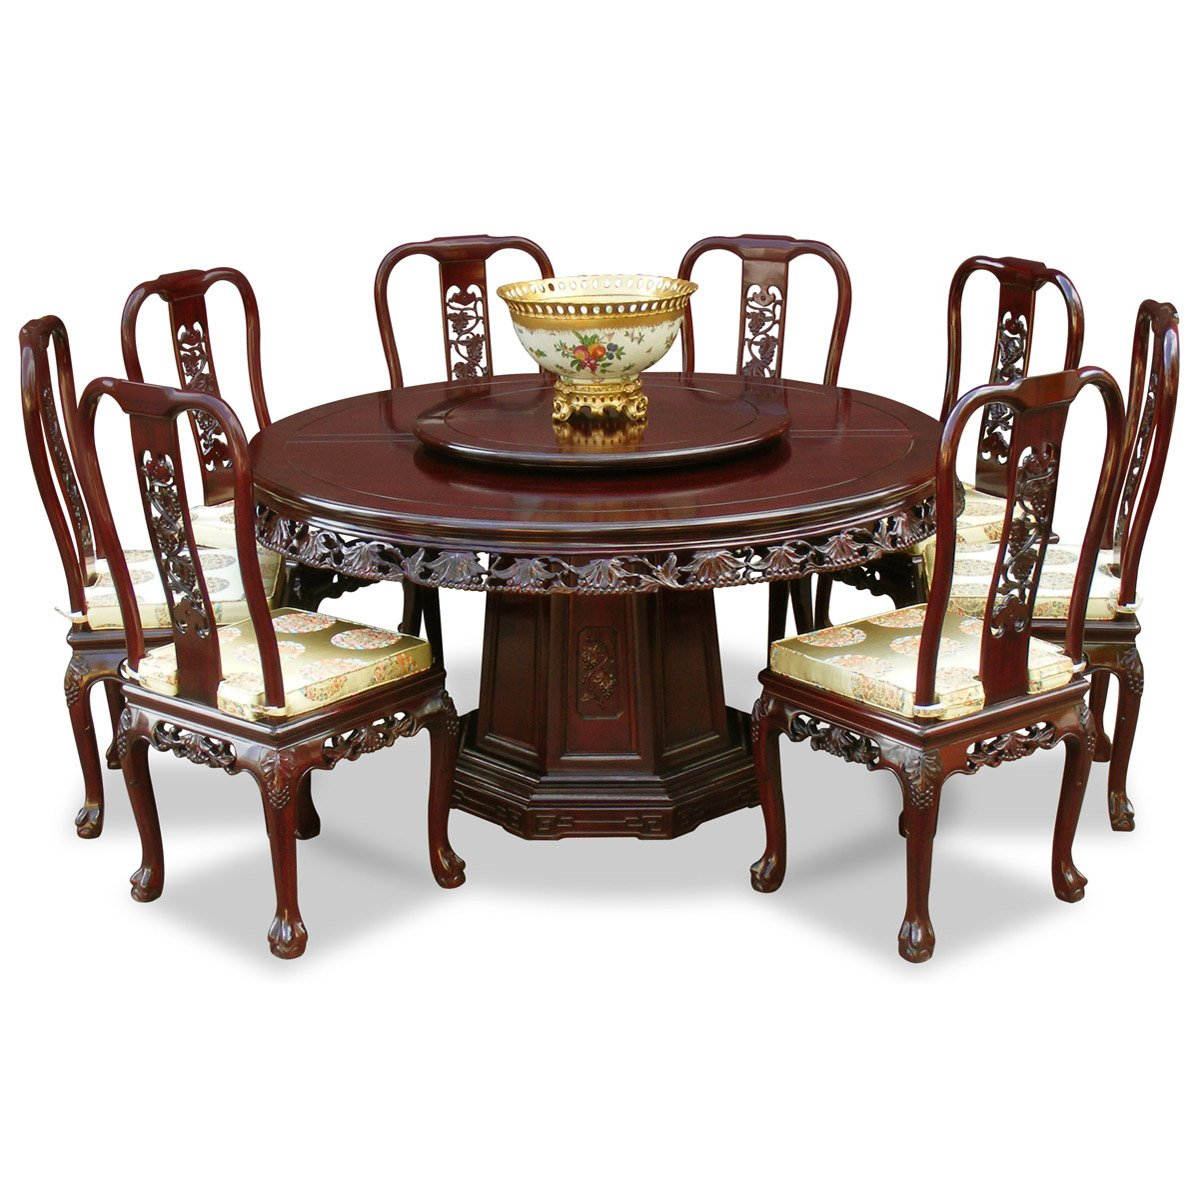 b64d331e79b26 Amazon.com - ChinaFurnitureOnline Rosewood Dining Table